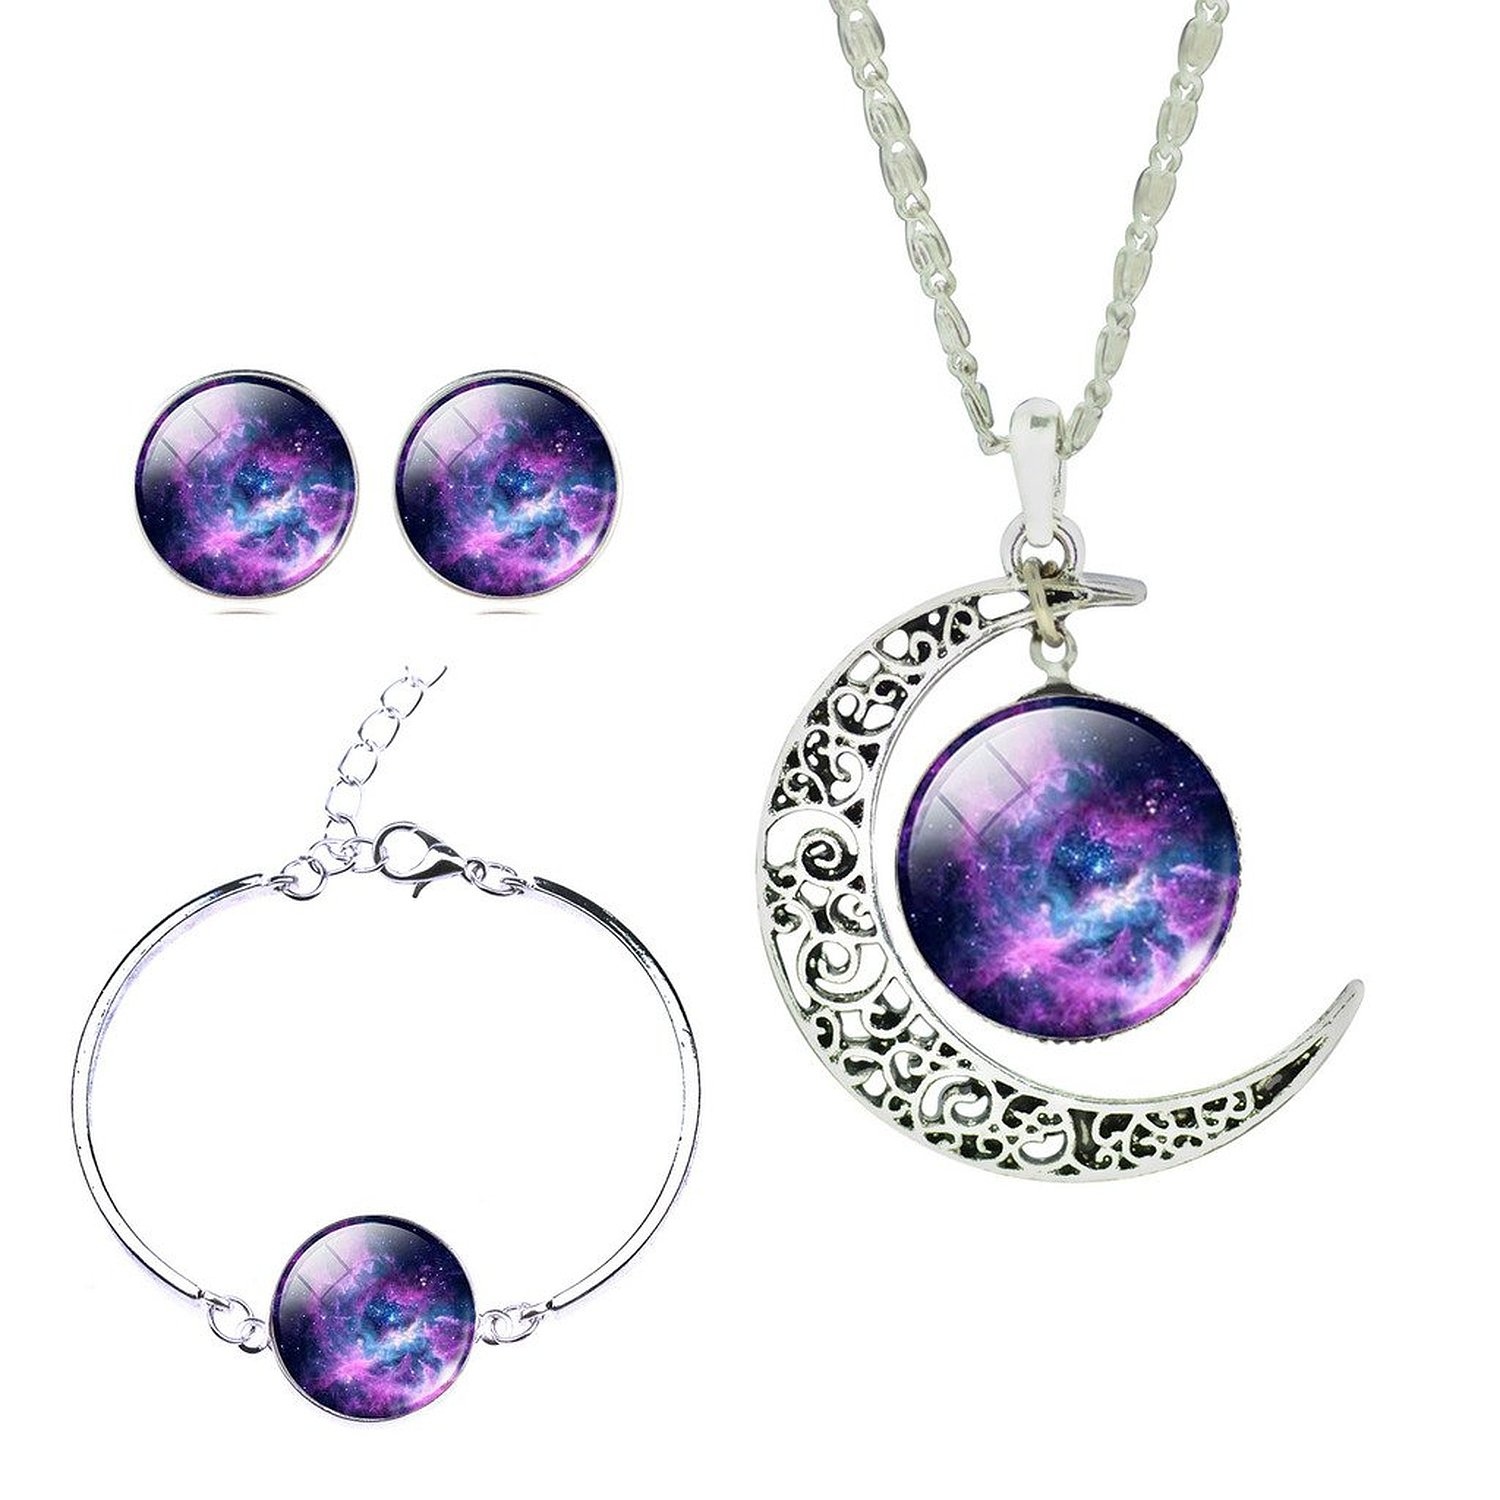 Girls Magical Solar System Helix Nebular Arch Moon Pendant Necklace Crystal Earrings Bracelet Set